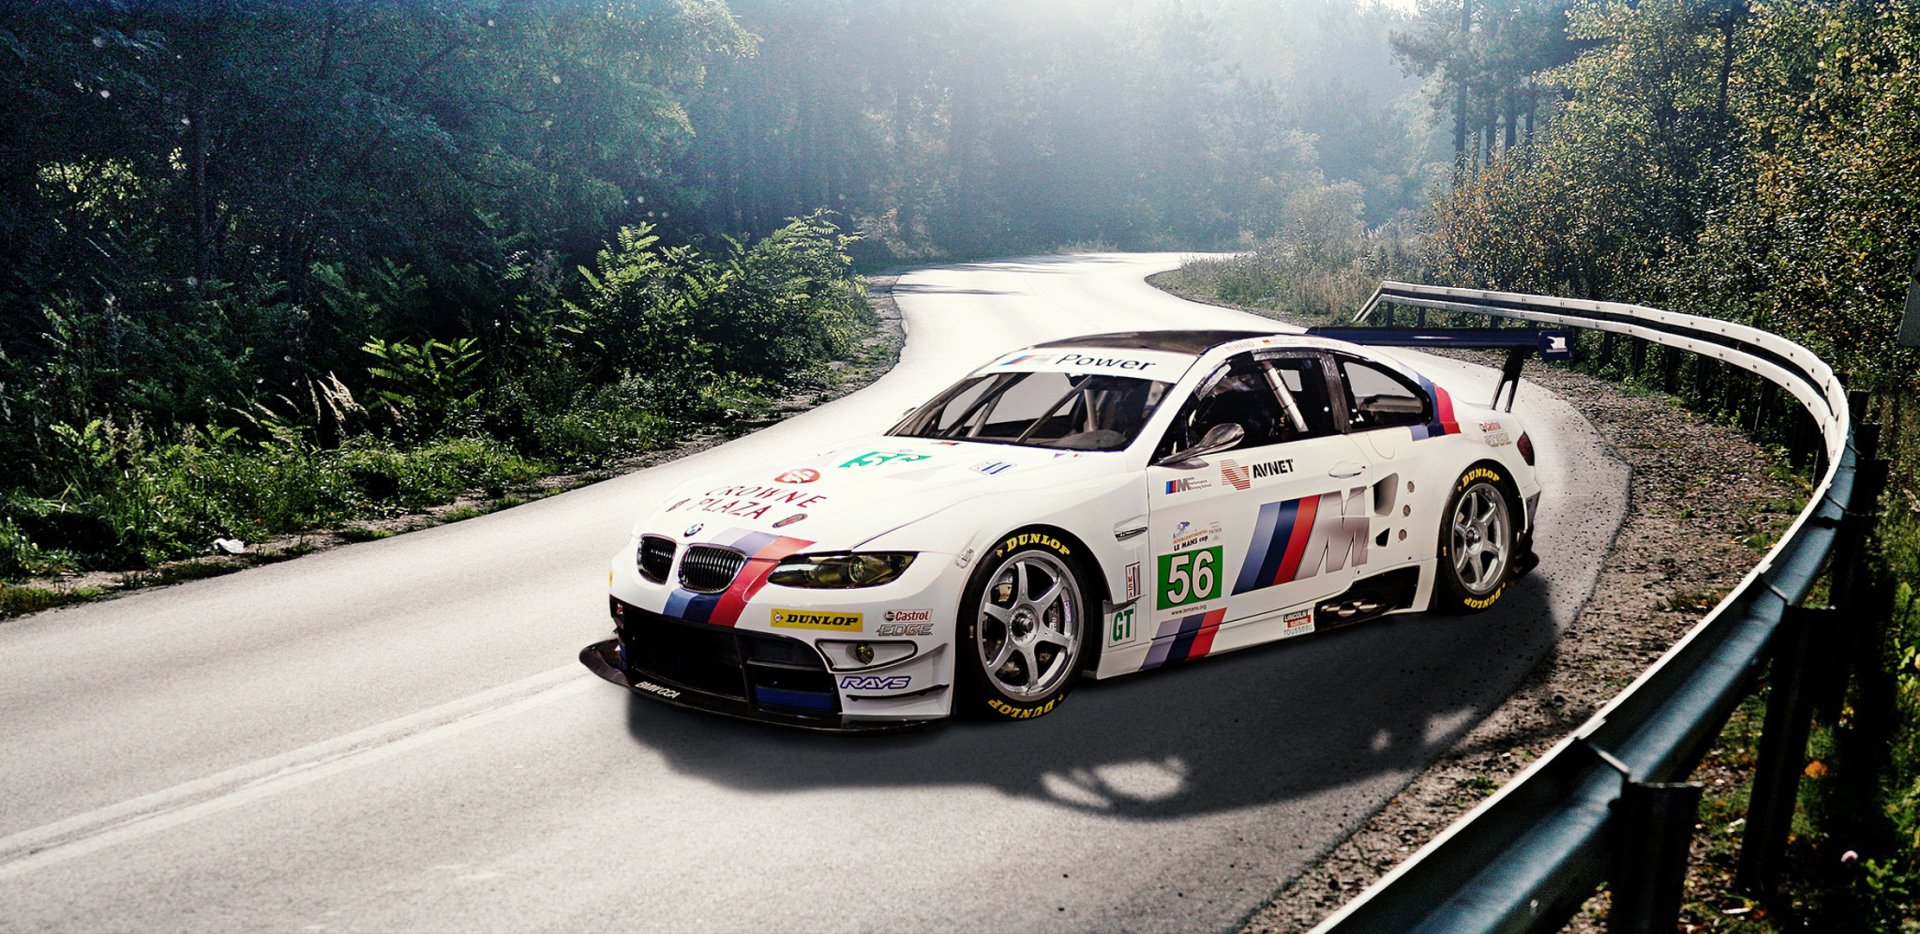 Vehicles - Race Car  BMW Wallpaper